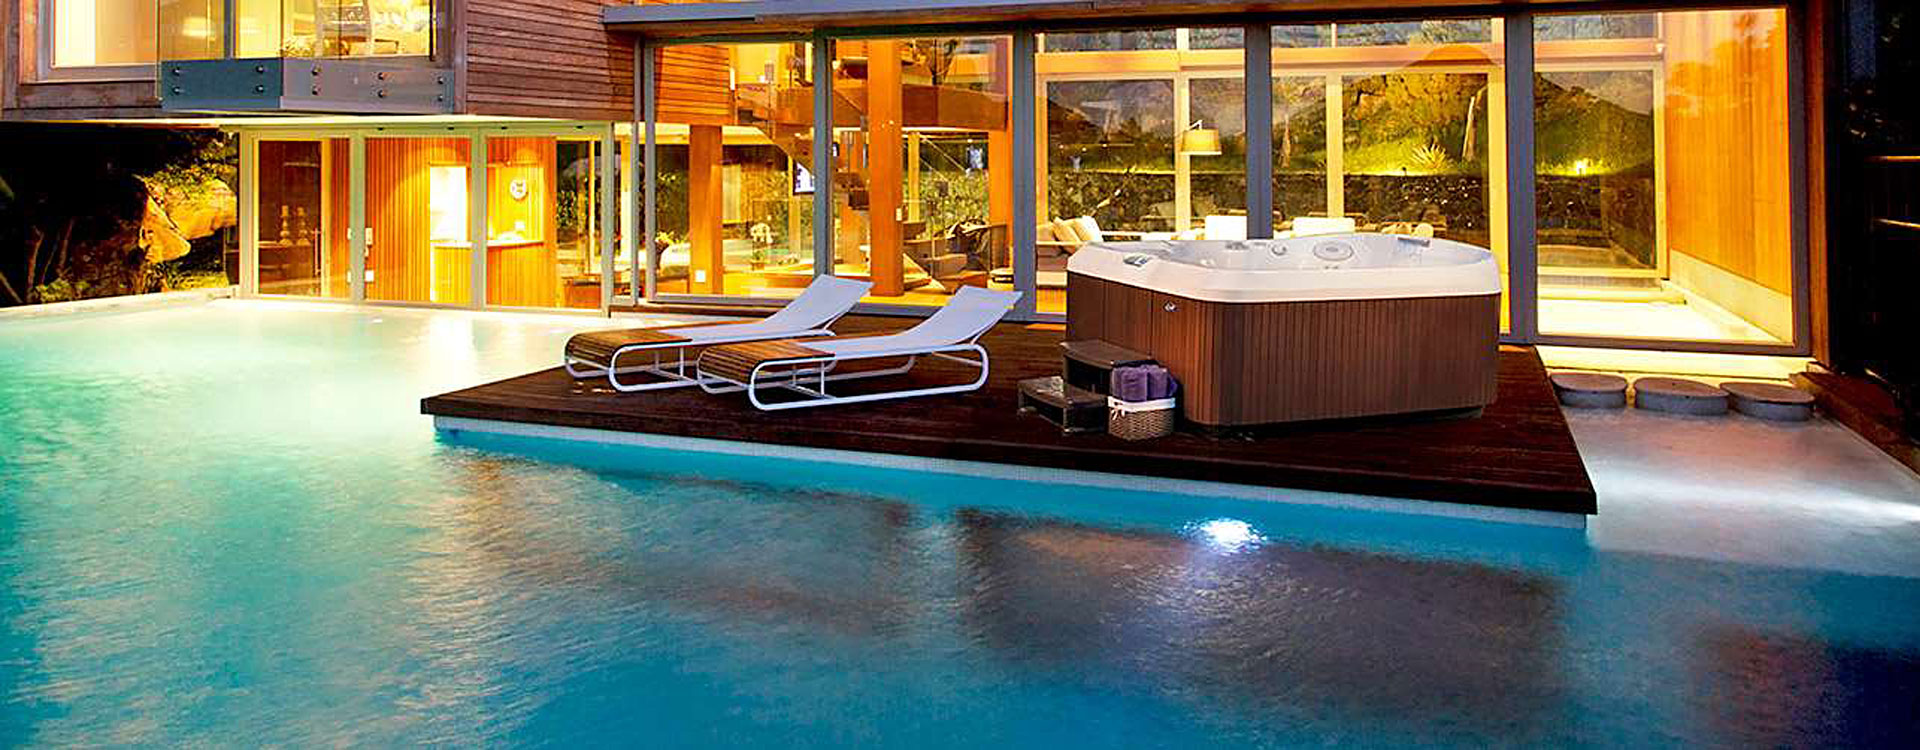 Paradise Pool and Spa Hot Tub